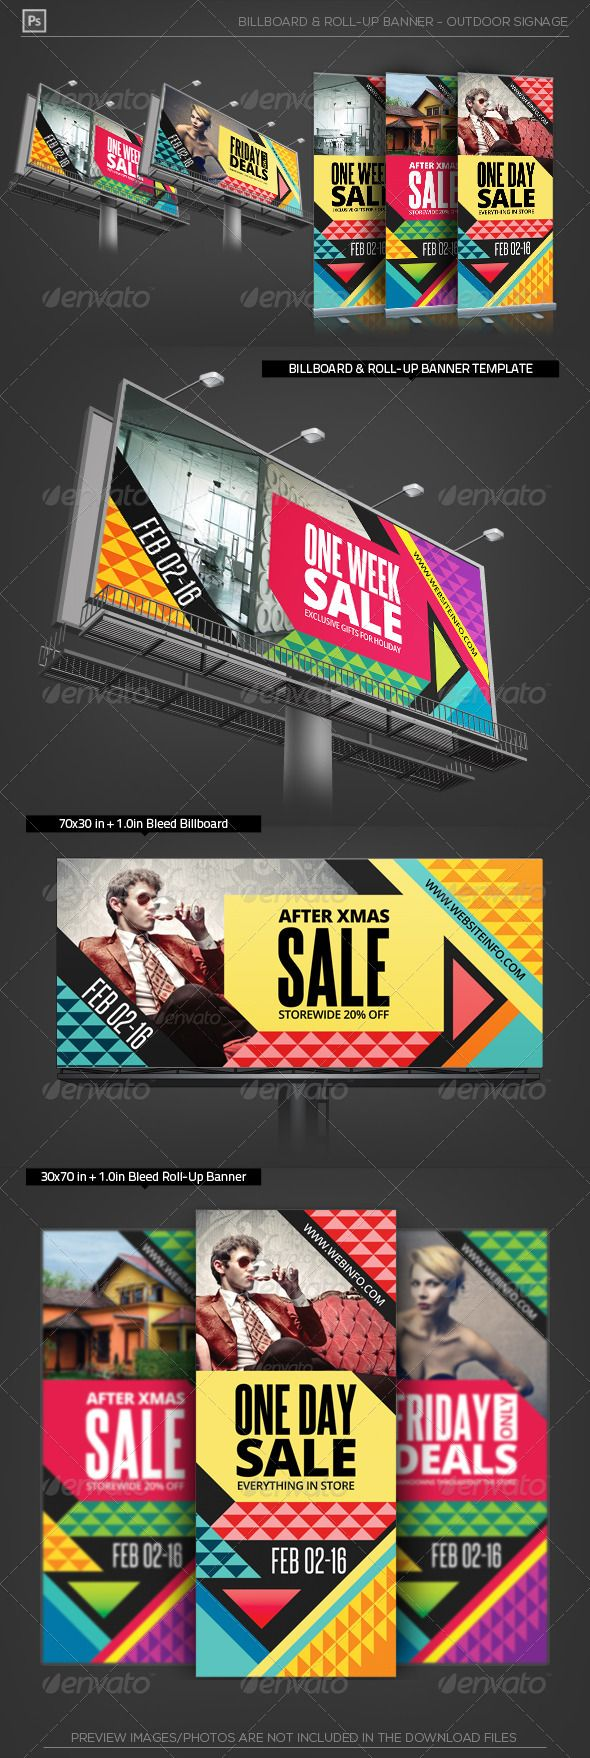 Holiday Sale Billboard Roll-Up Outdoor Banner